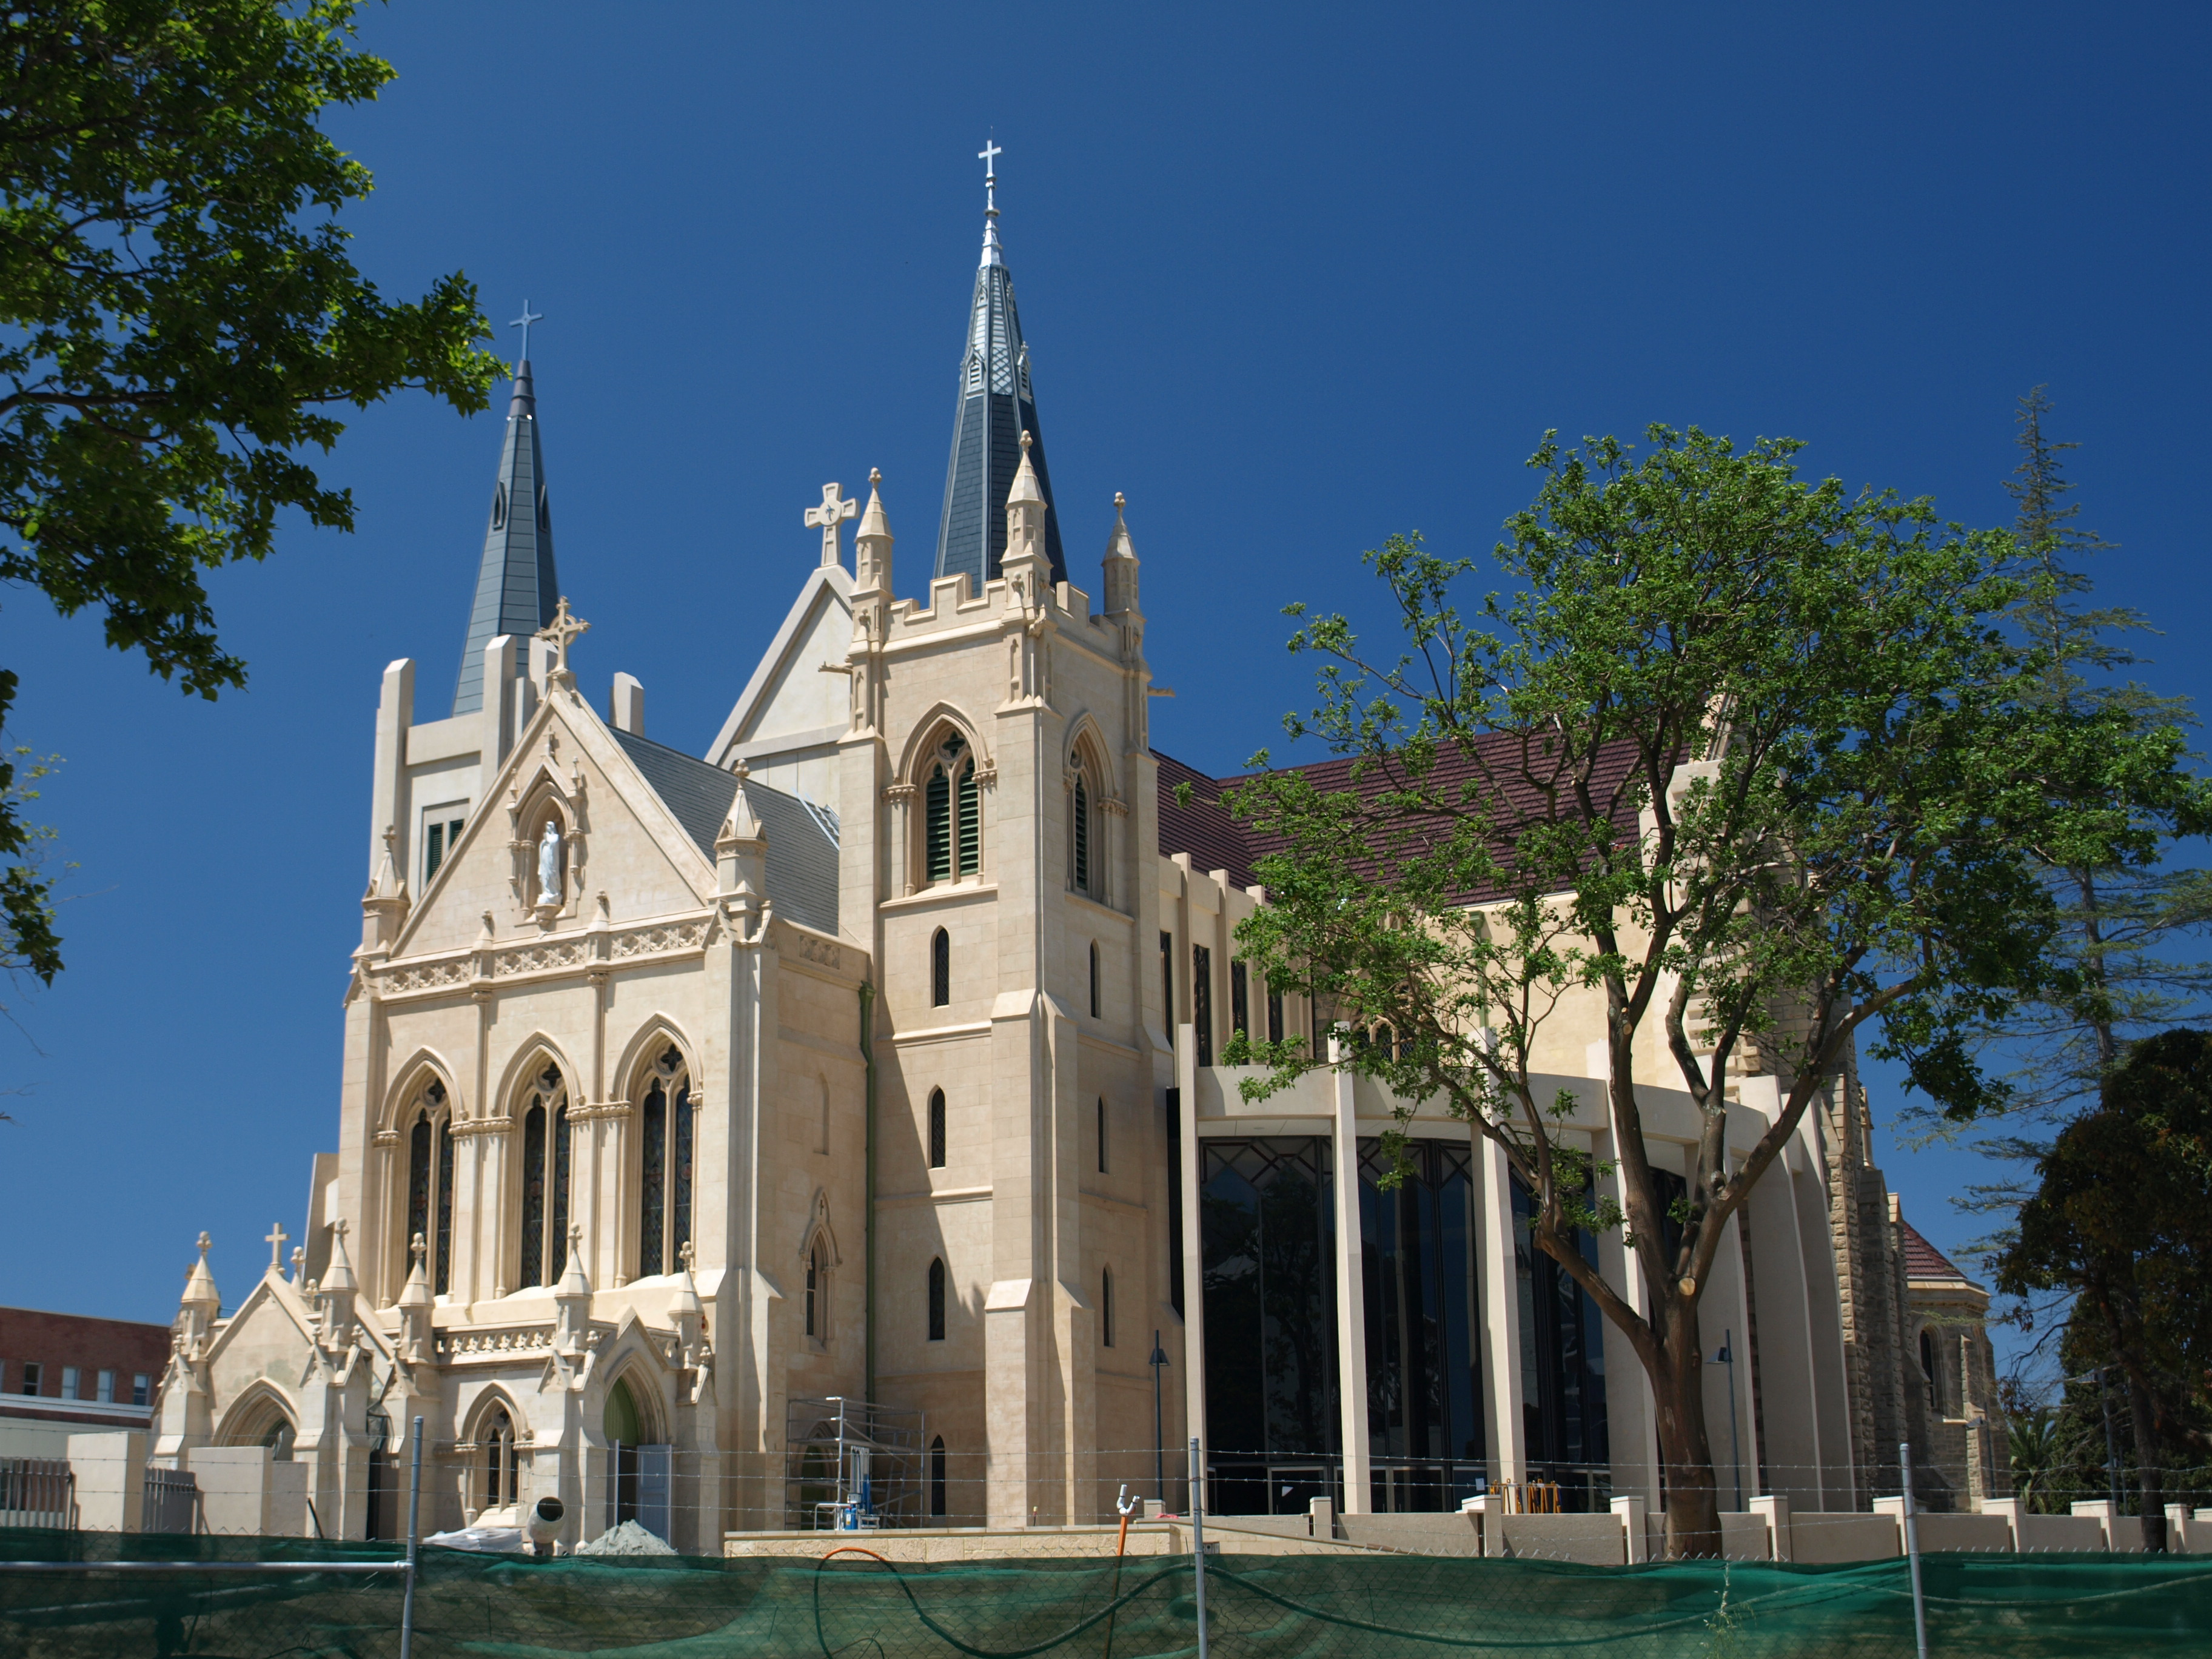 Saint Marys Australia  city images : St Mary's Cathedral, Perth 2009 2 Wikimedia Commons